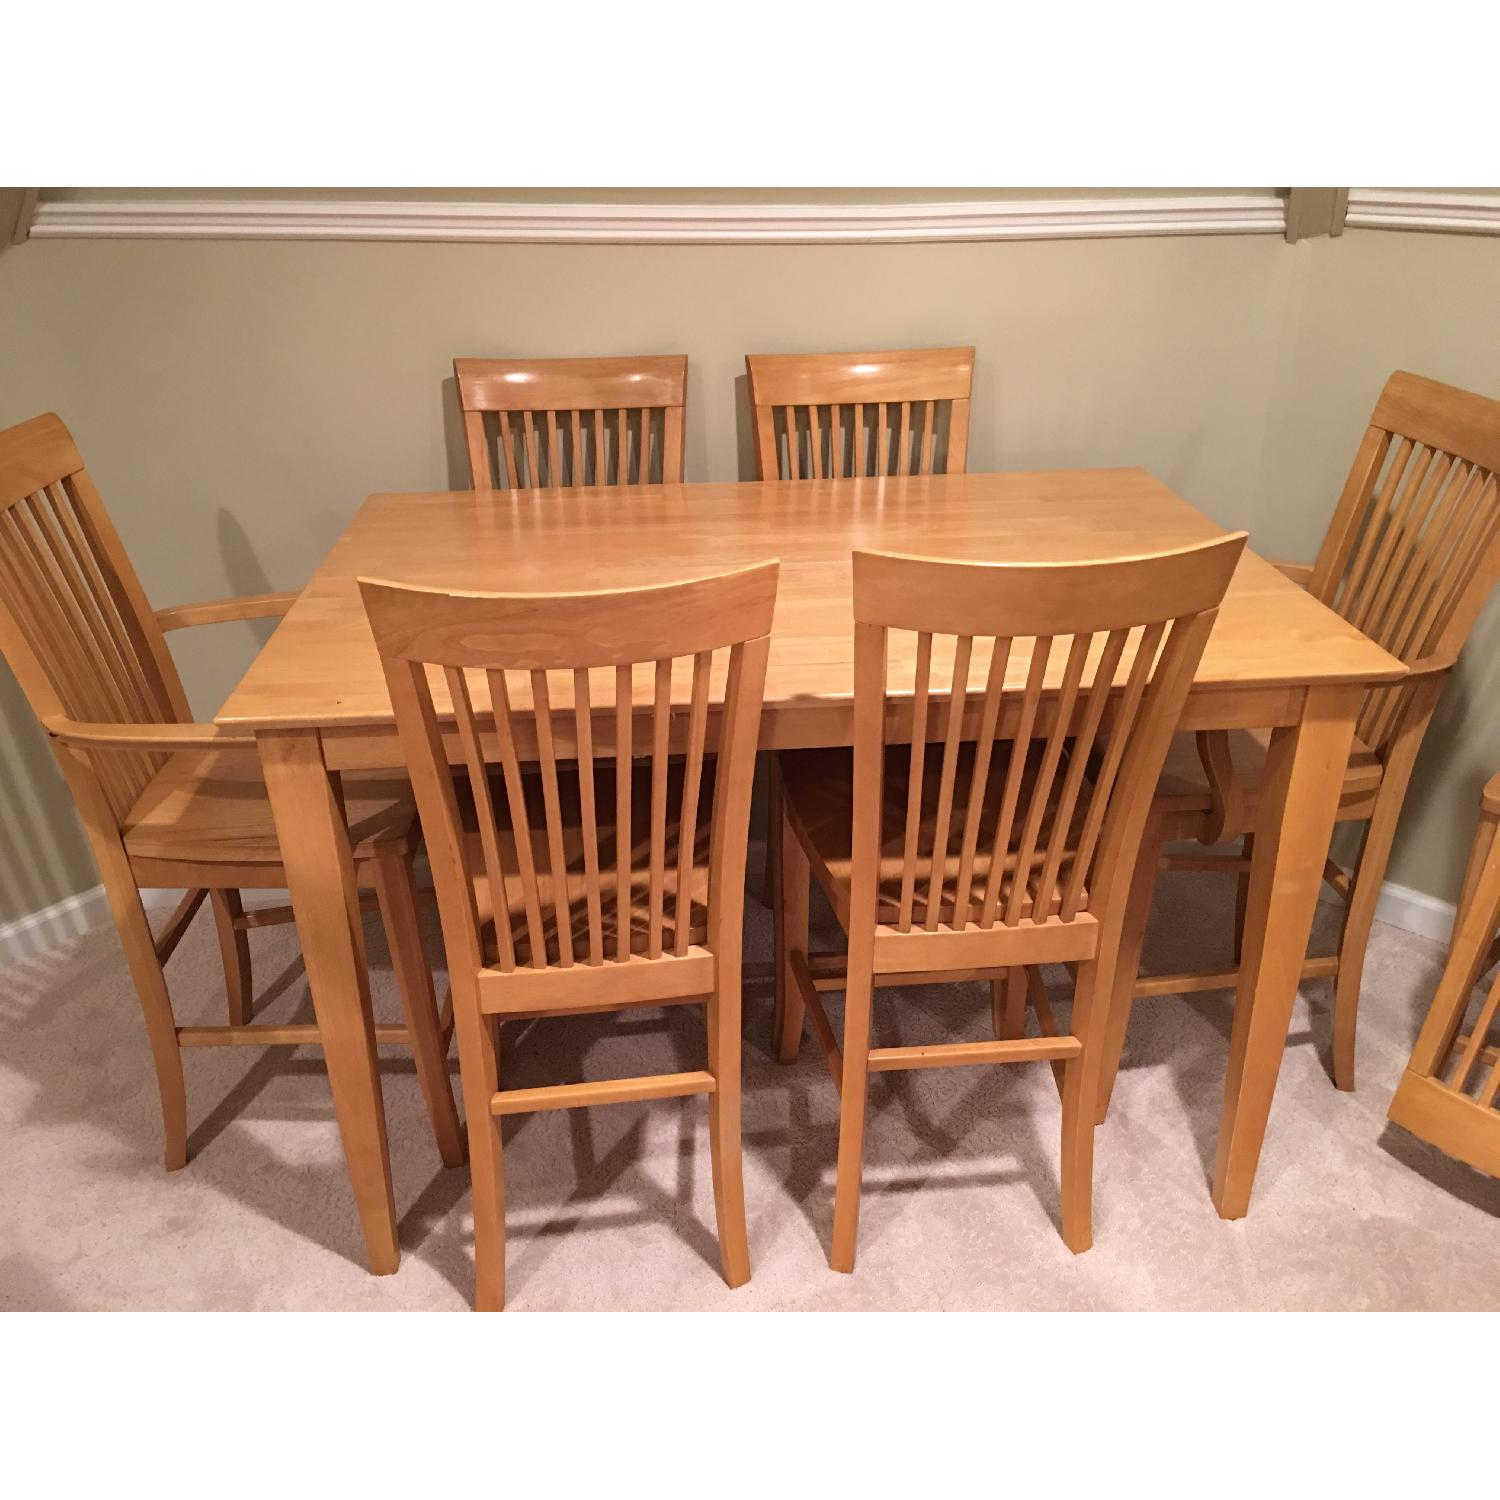 Kitchen Table w/ 8 Chairs